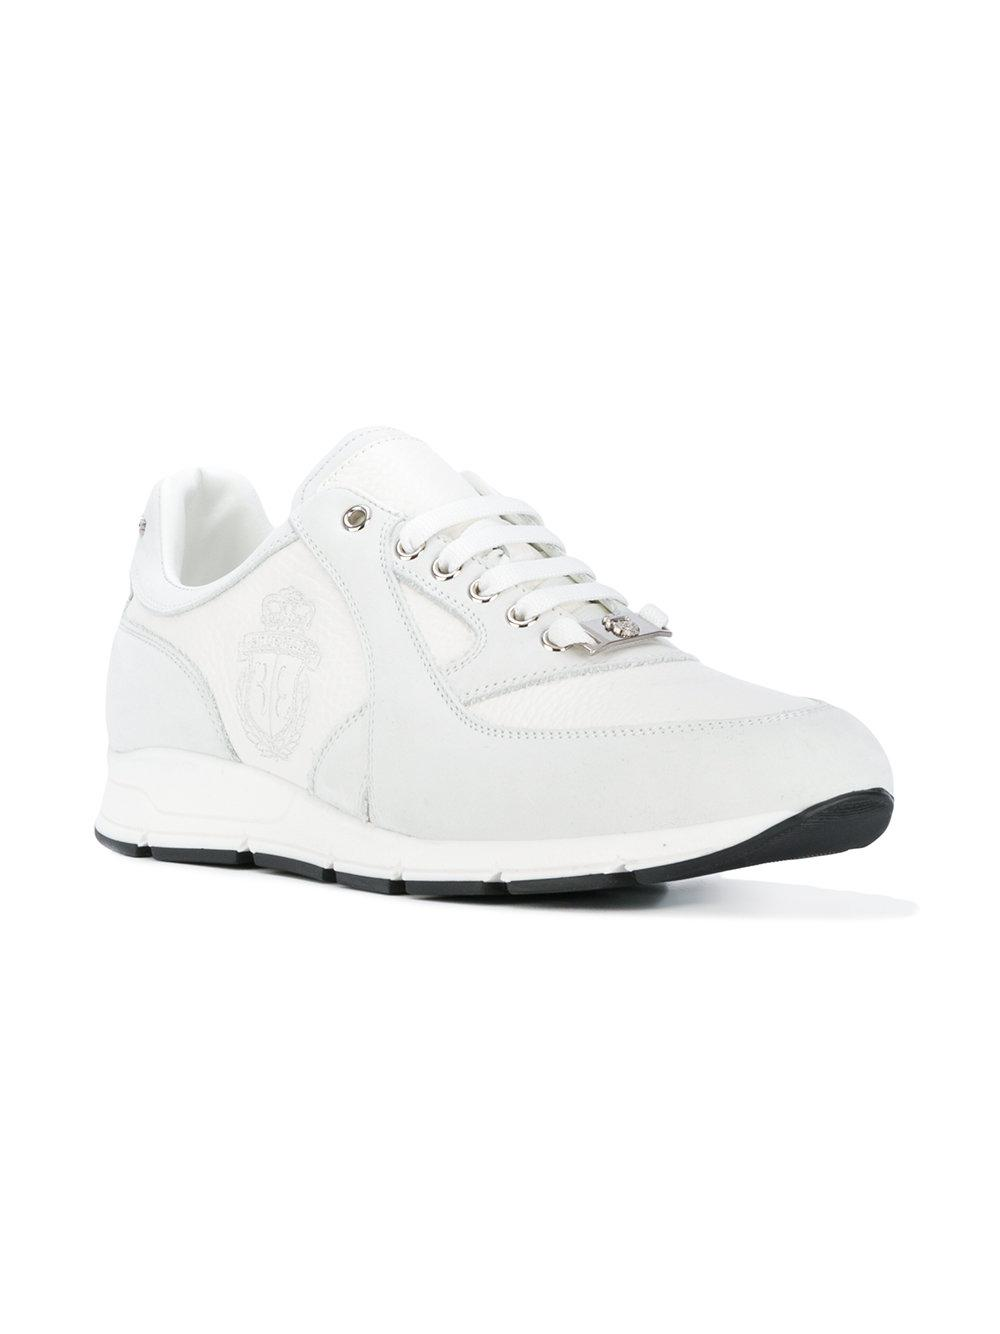 Billionaire Eric runner sneakers sale 100% authentic free shipping original manchester great sale for sale outlet store locations outlet visa payment crEmL9jxUb